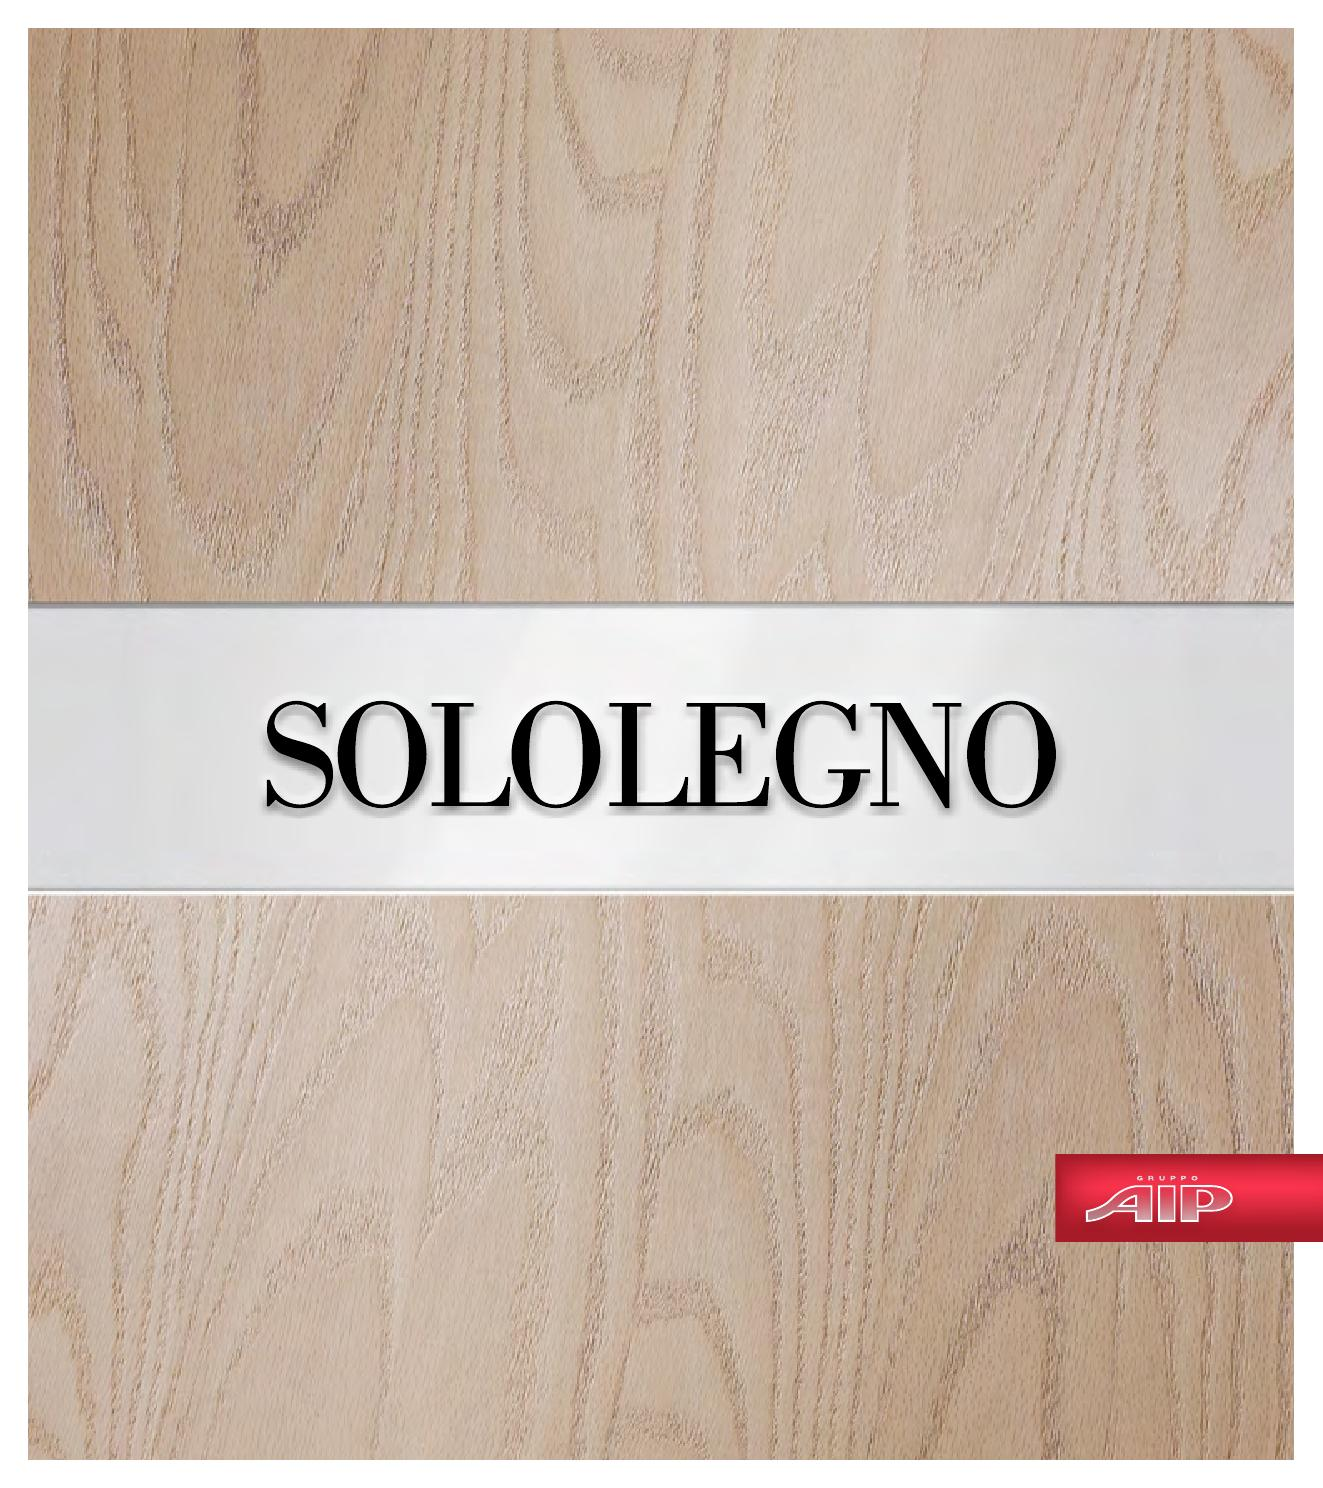 catalogo sololegno 2014 by aip porte issuu